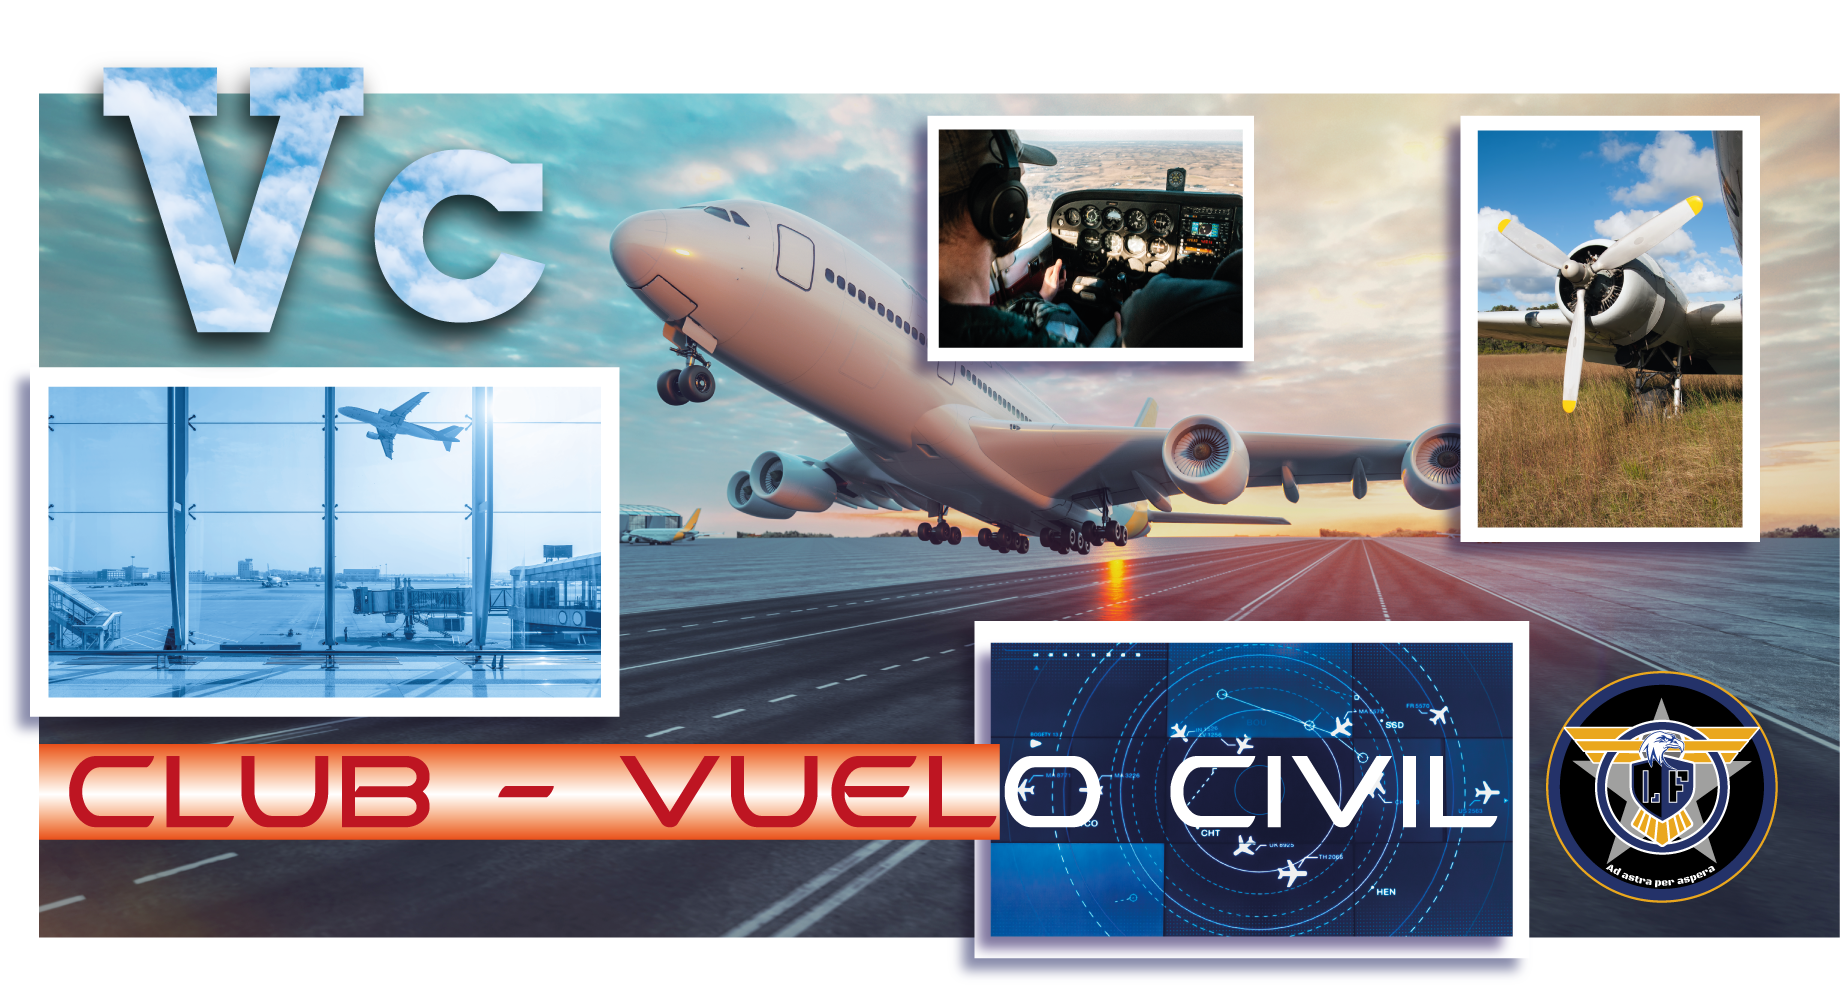 Vuelo Civil